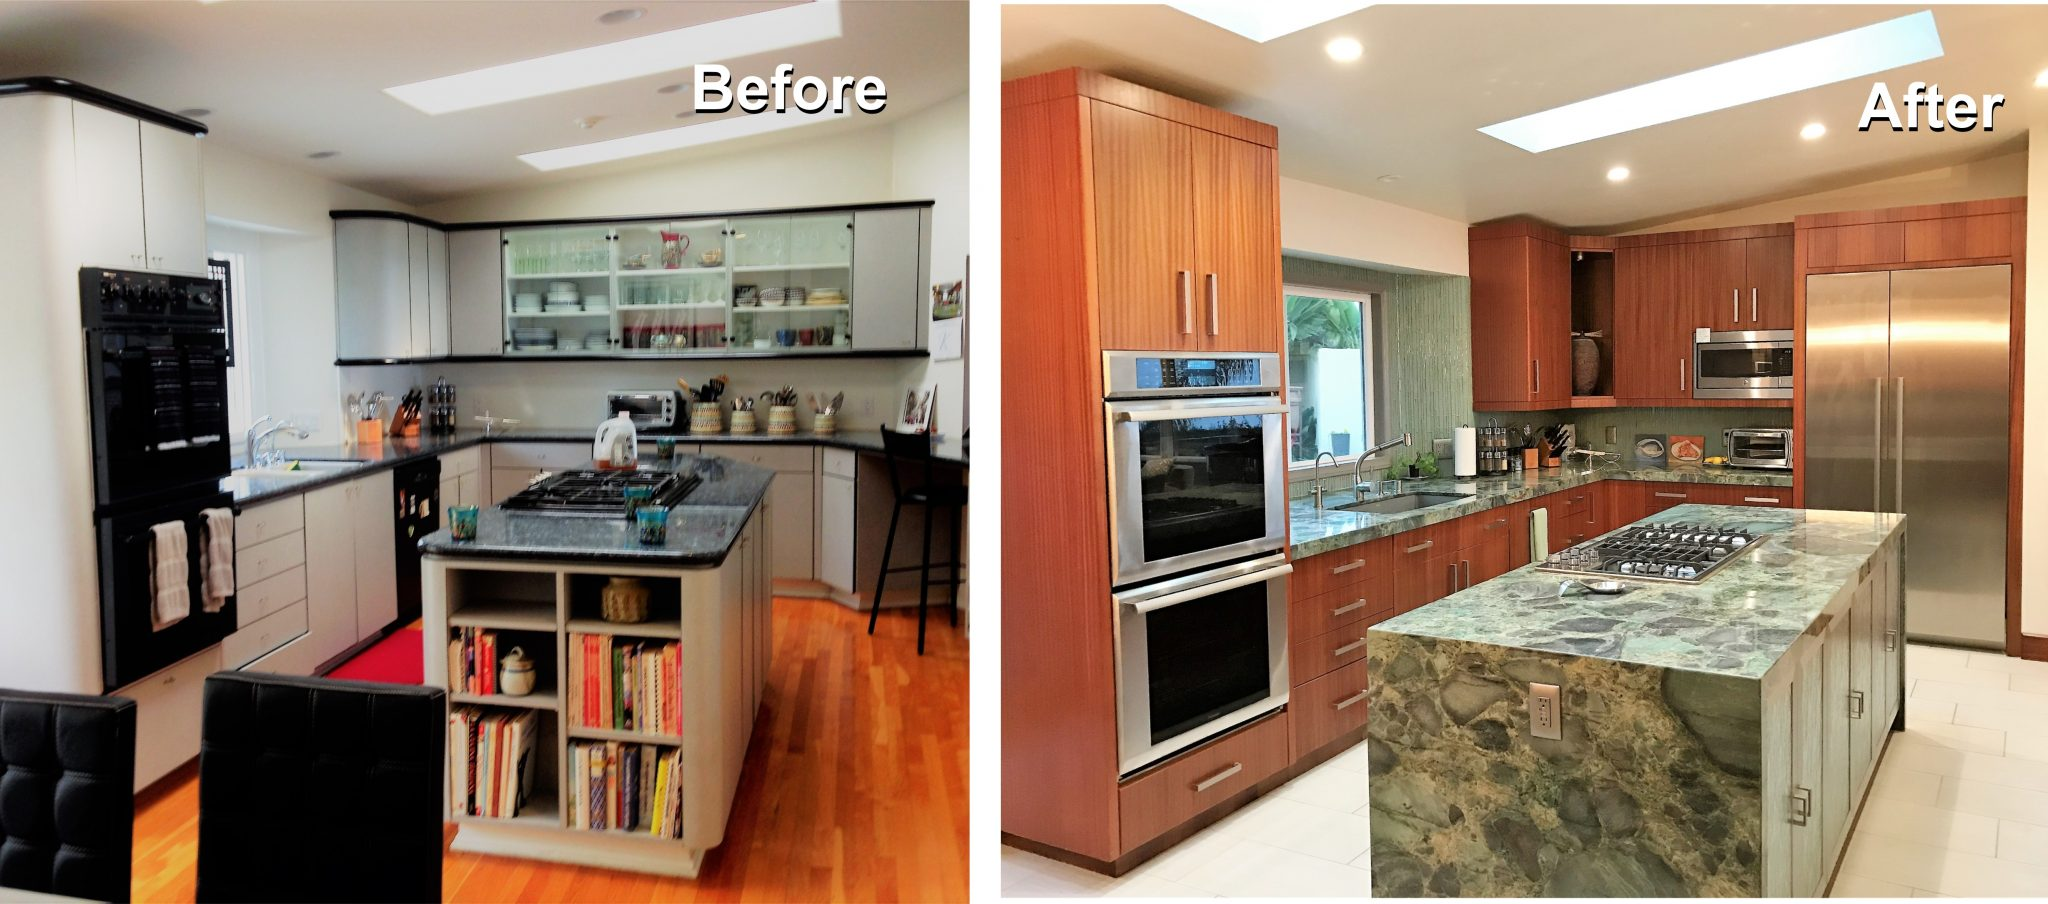 San Diego Interior Designer and Color Consultant | Anna Rodé Designs | Before and After Kitchen Remodel